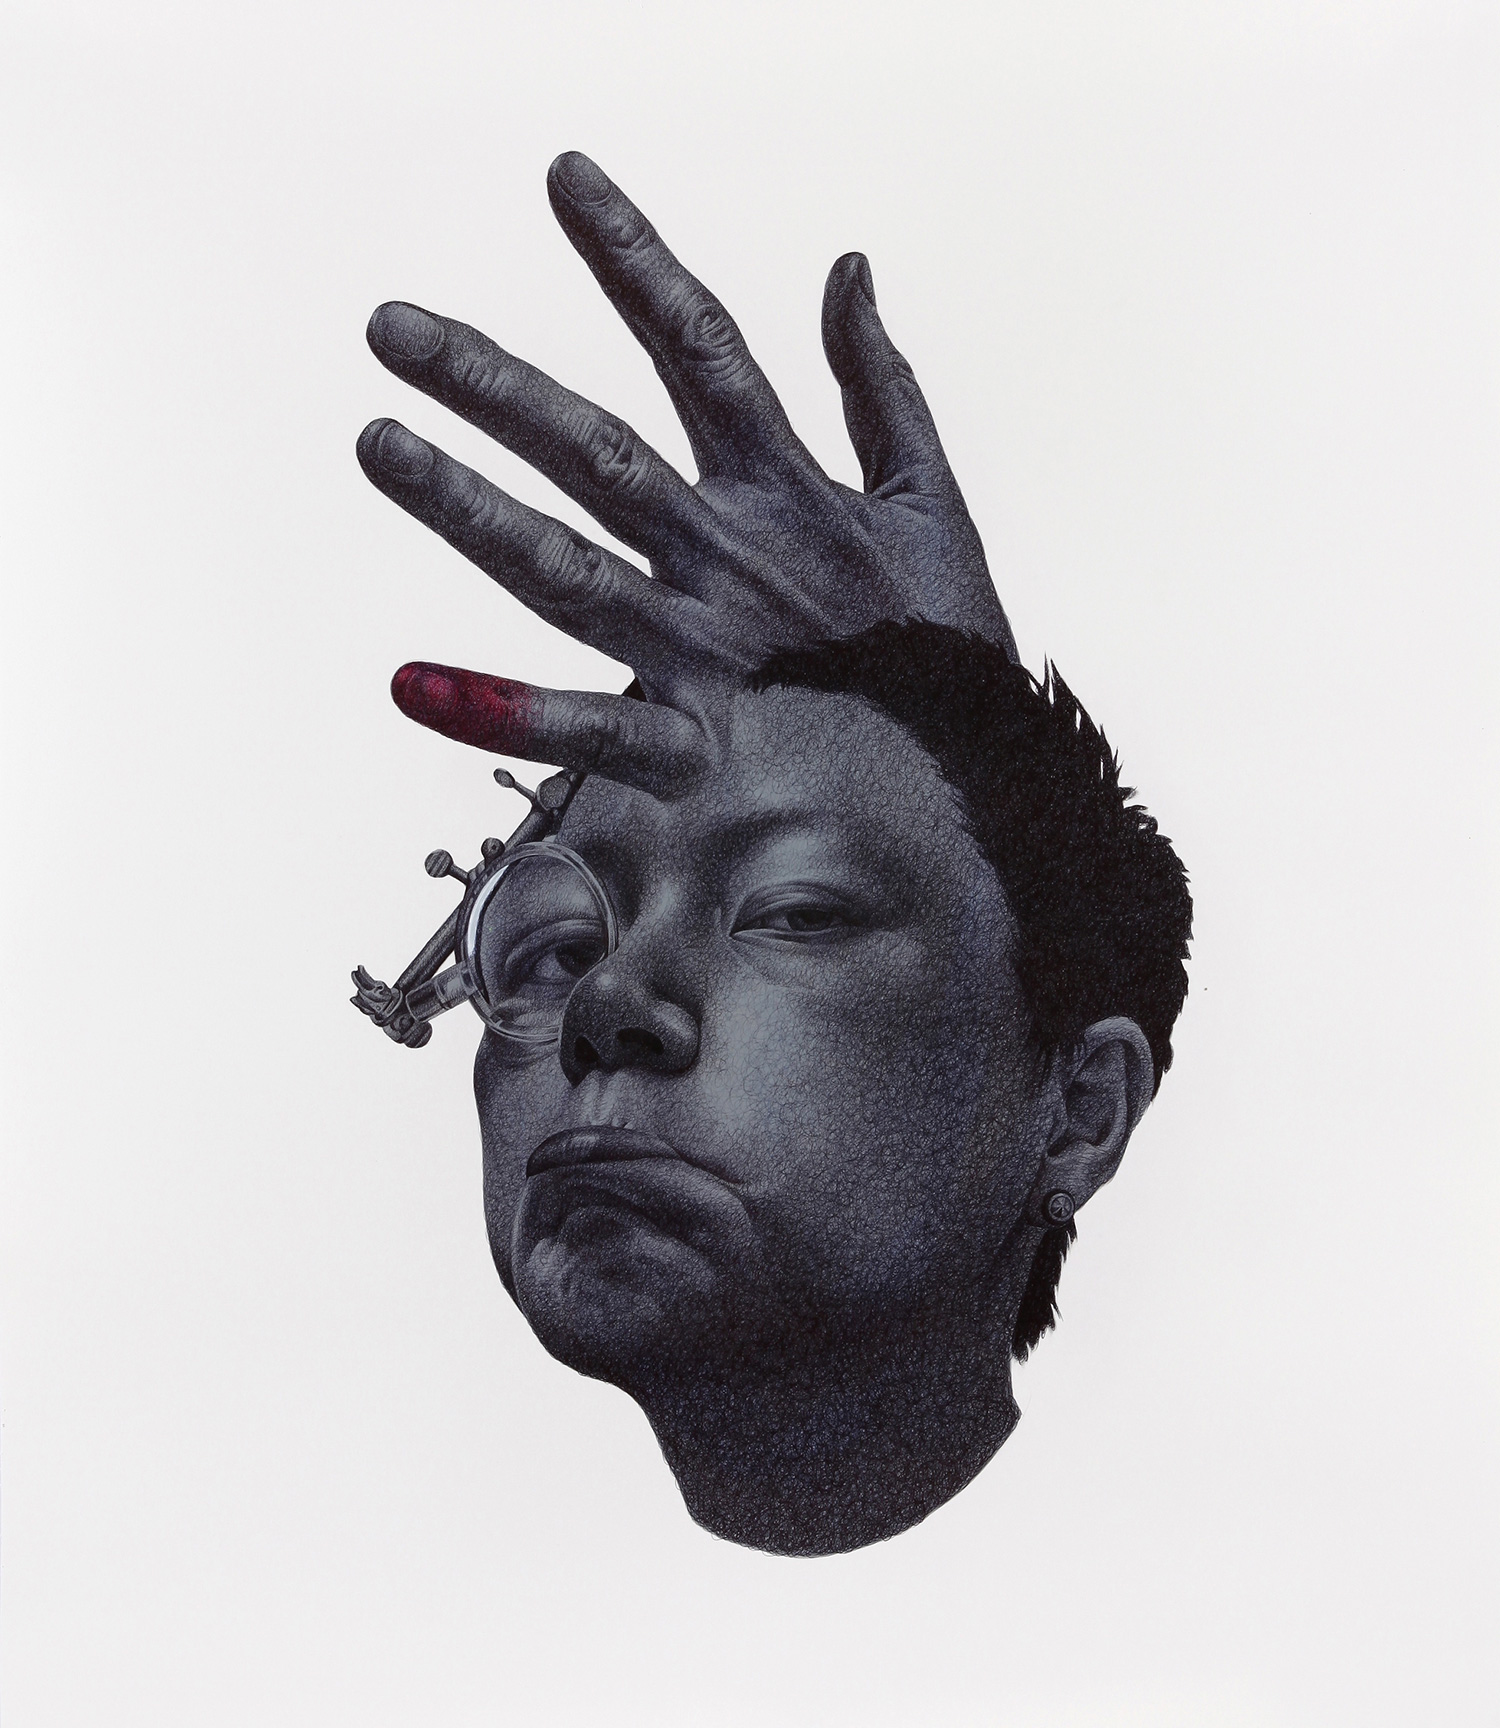 Seungyea Park - a hand caught in the time of the space